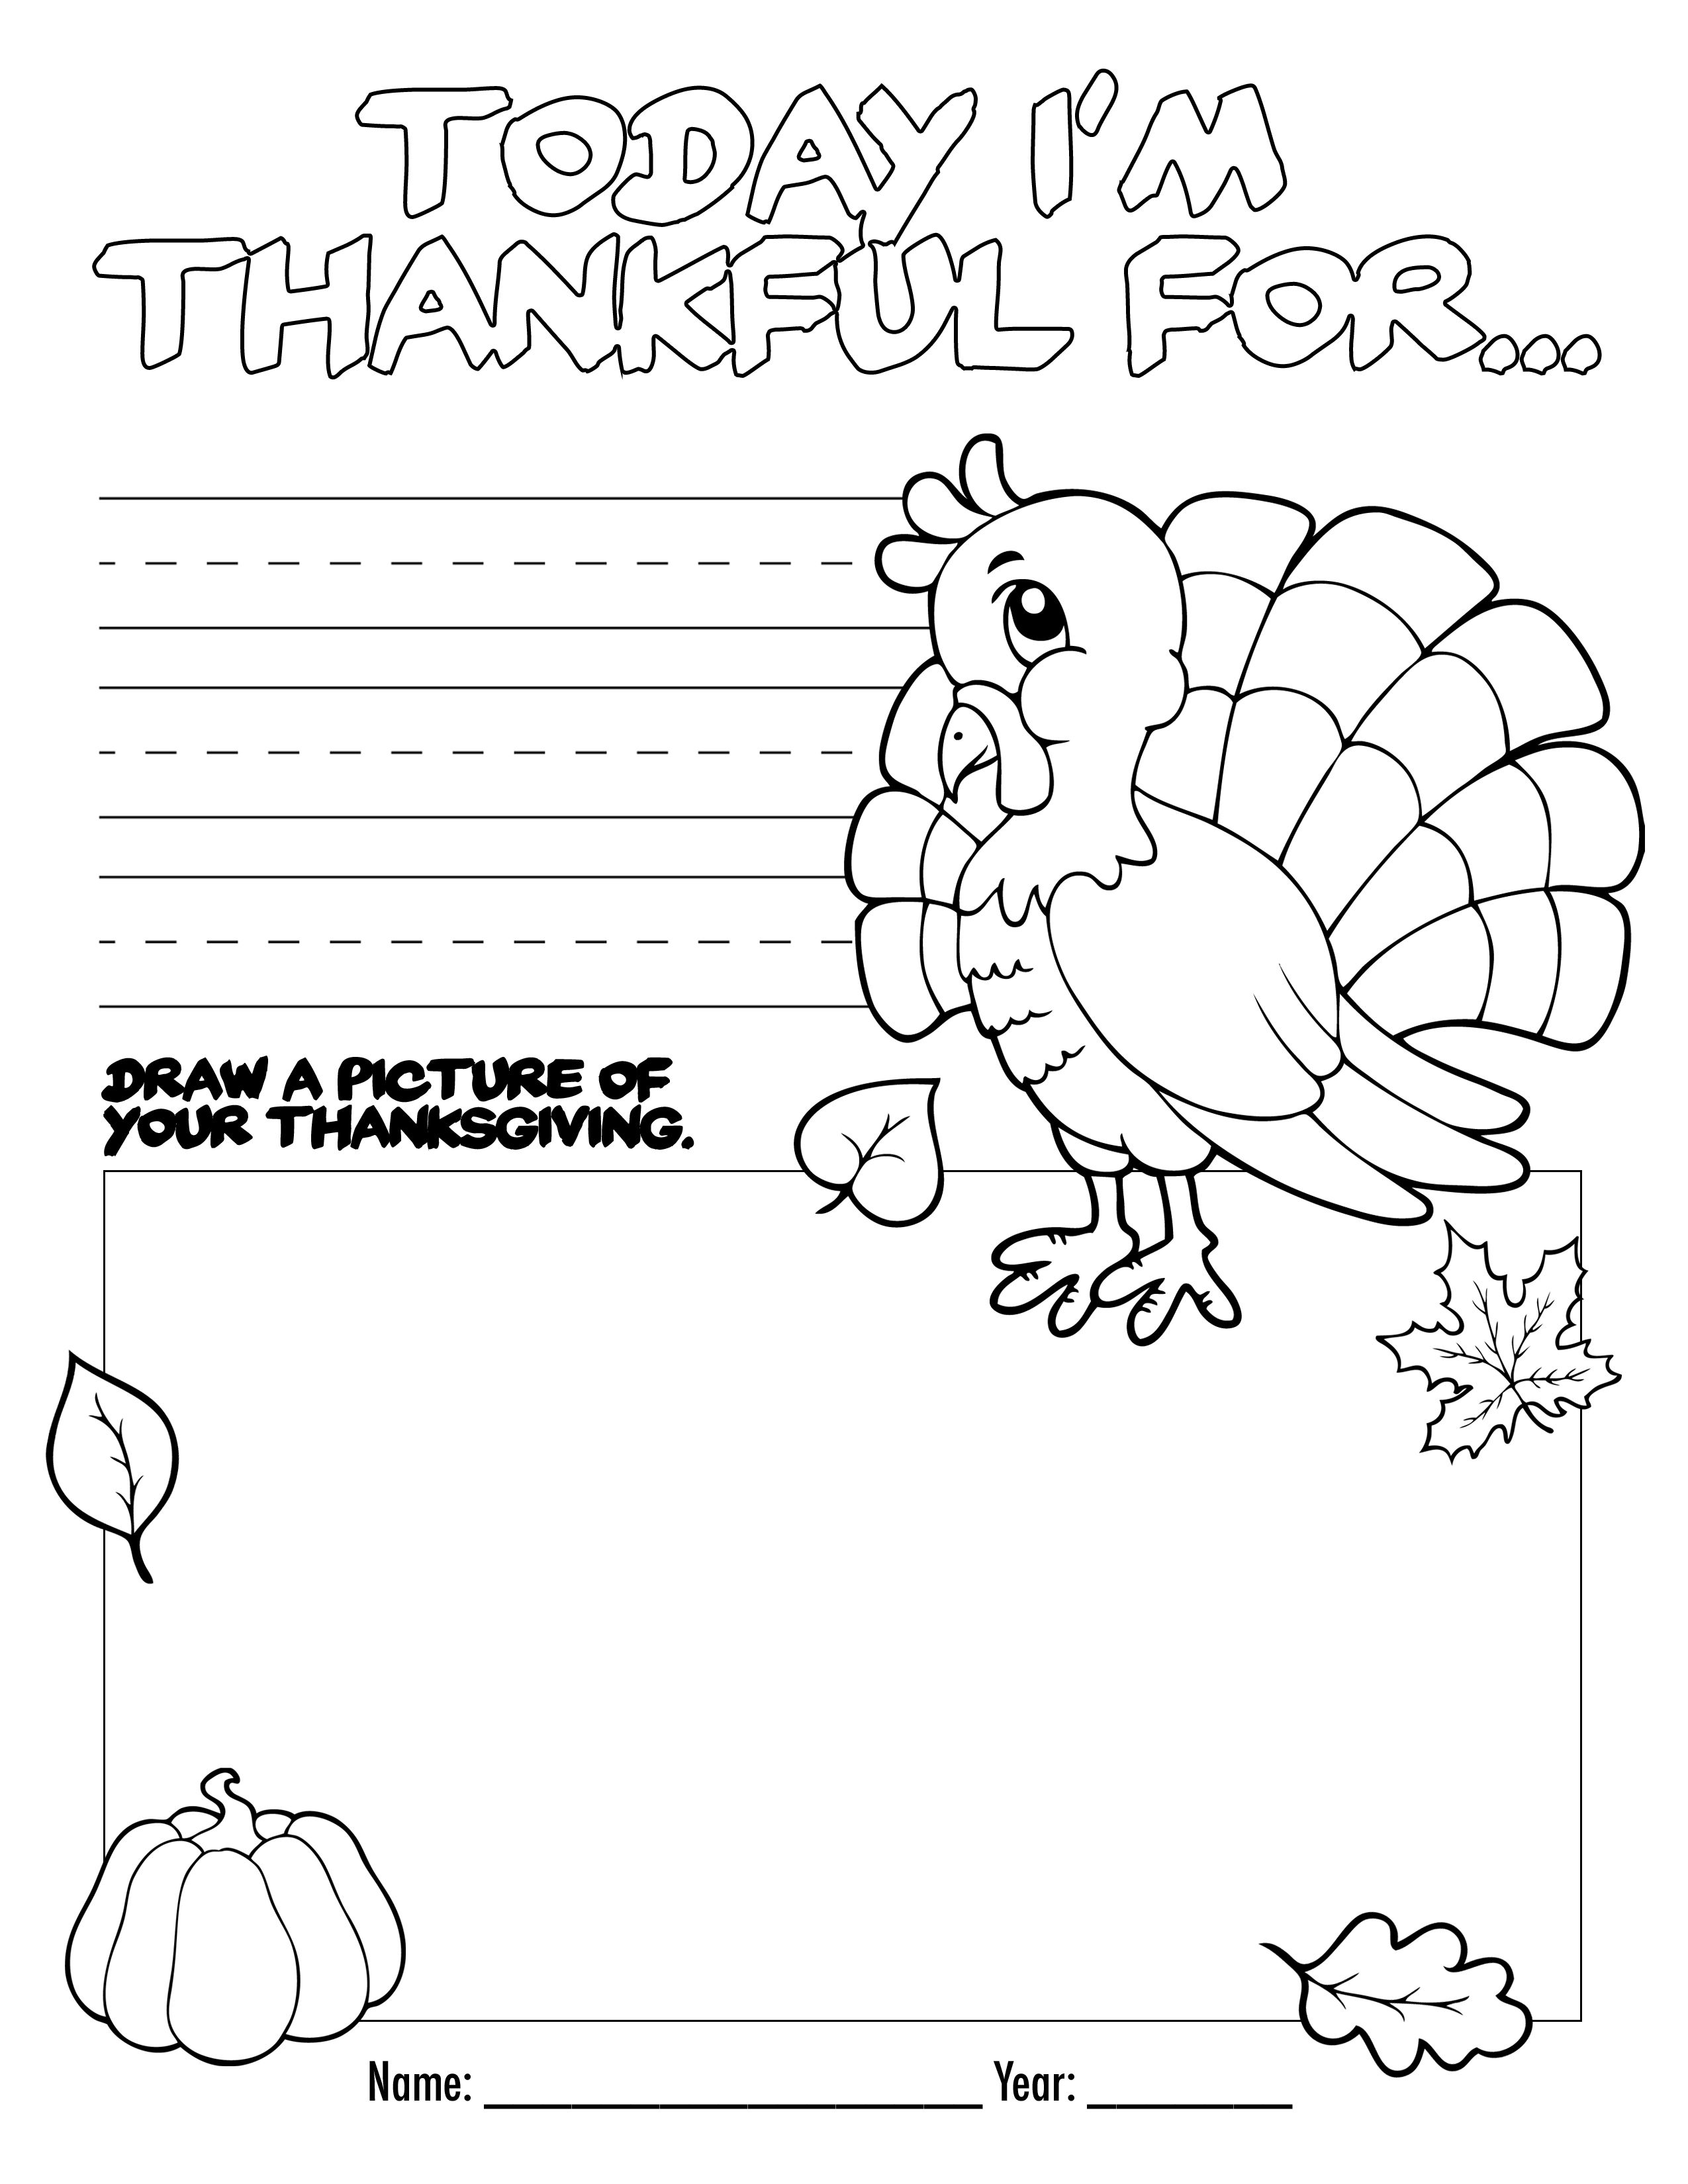 Thanksgiving Coloring Book Free Printable For The Kids Free Thanksgiving Coloring Pages Thanksgiving Coloring Book Thanksgiving Coloring Sheets